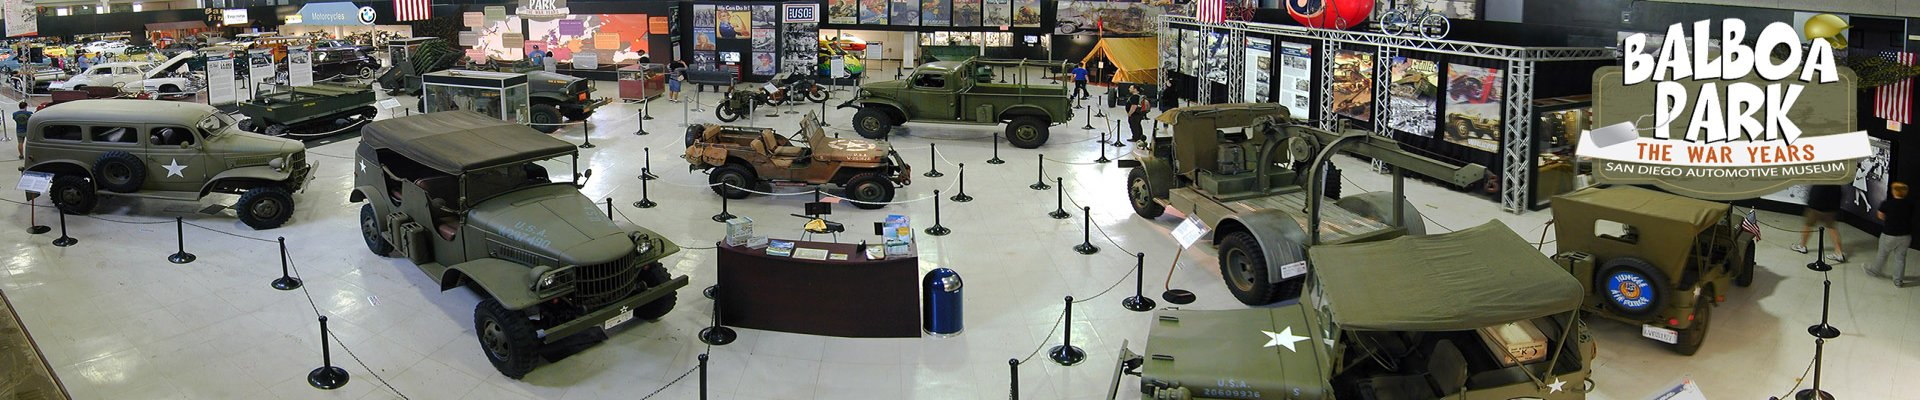 War Years Exhibit